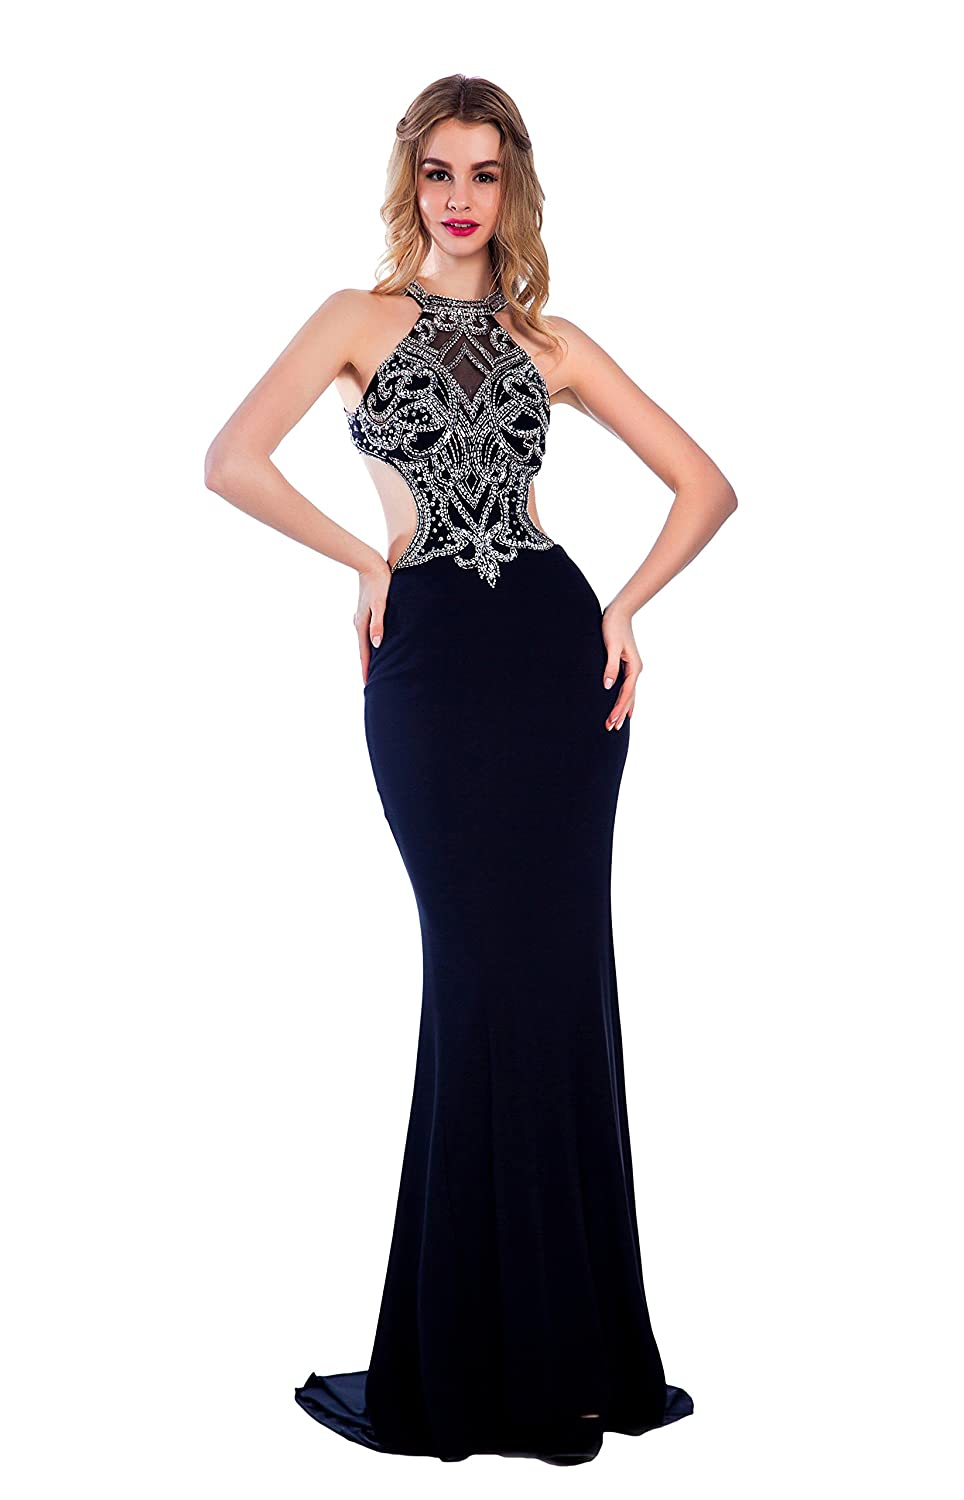 Bridal_Mall Women's Beaded Hlater Stretchy Mermaid Long Prom Evening Dresses